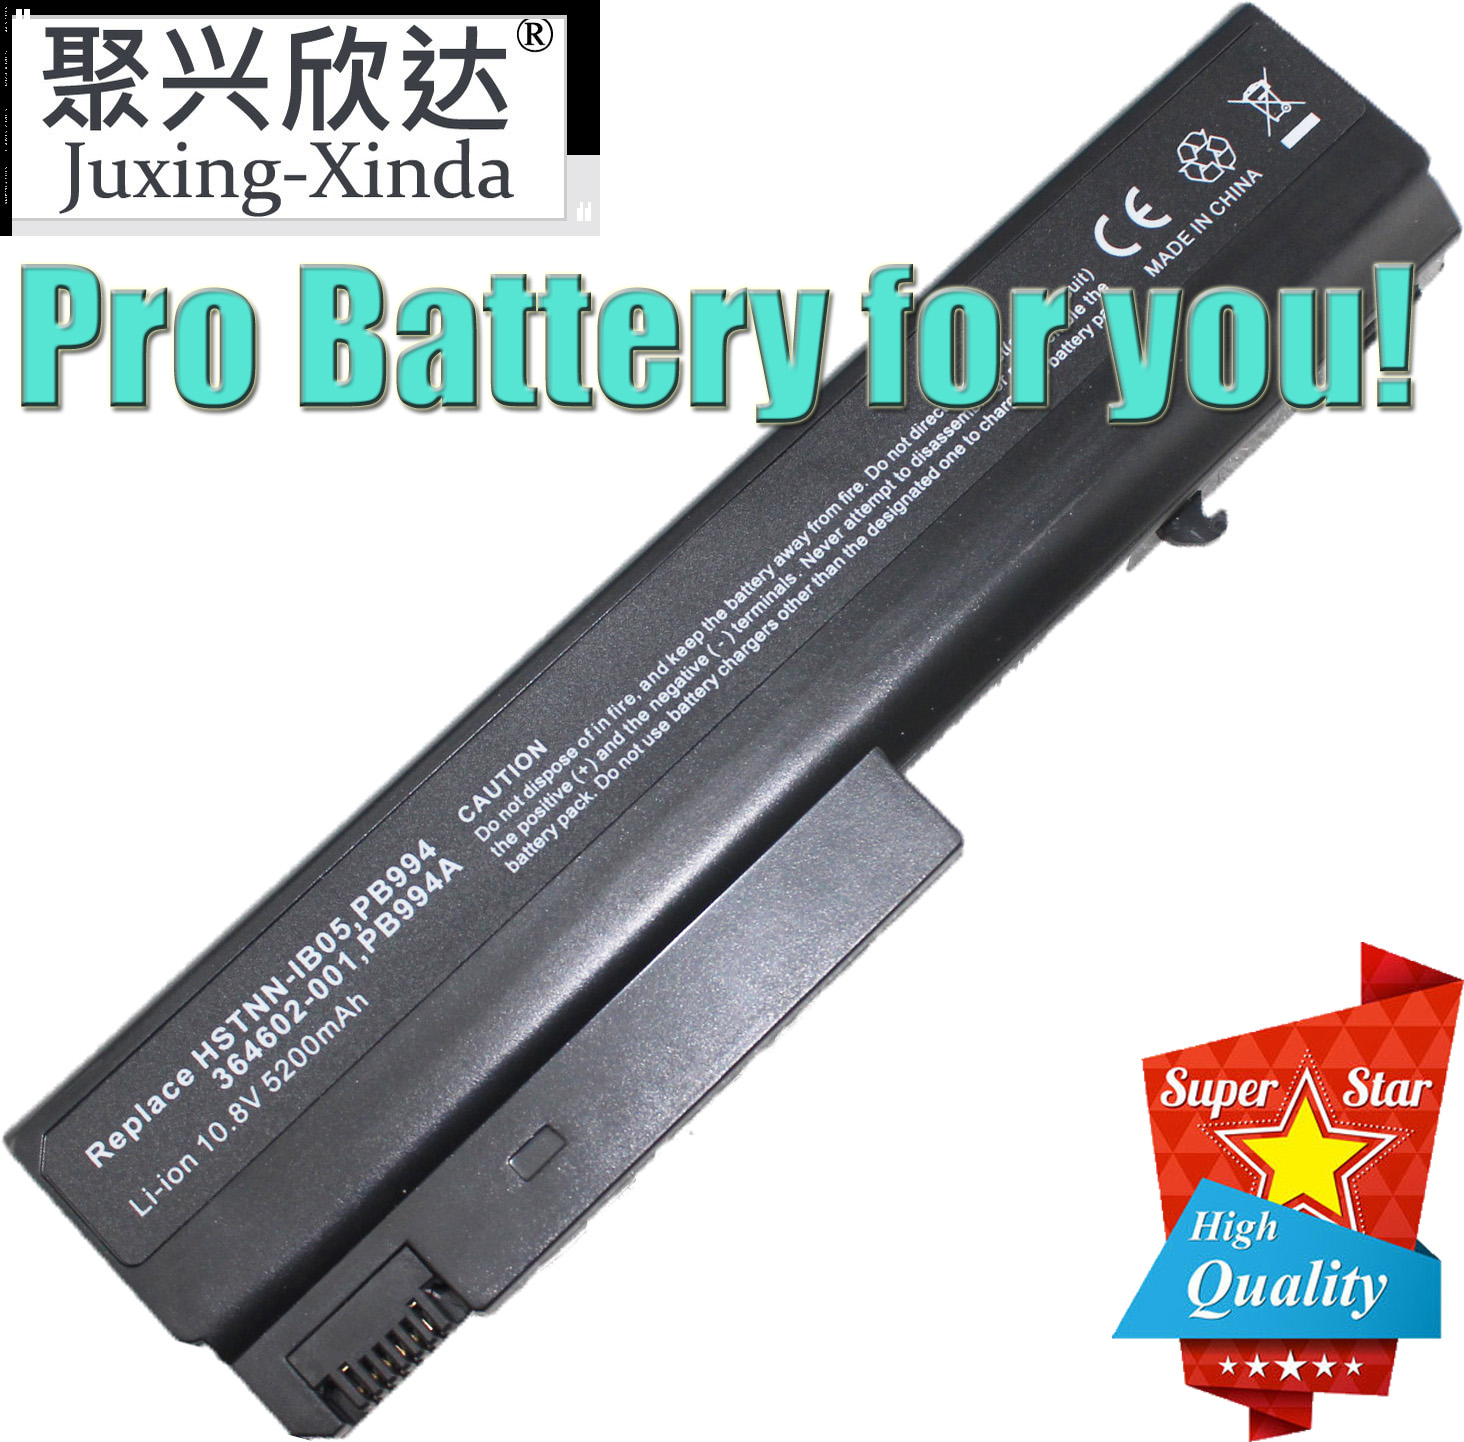 Laptop Battery For <font><b>Hp</b></font> Compaq 6910p <font><b>6510b</b></font> 6515b 6710b 6710s 6715b 6715s NC6100 NC6105 NC6110 NC6115 NC6120 nc6140 nc6200 nx6110 image